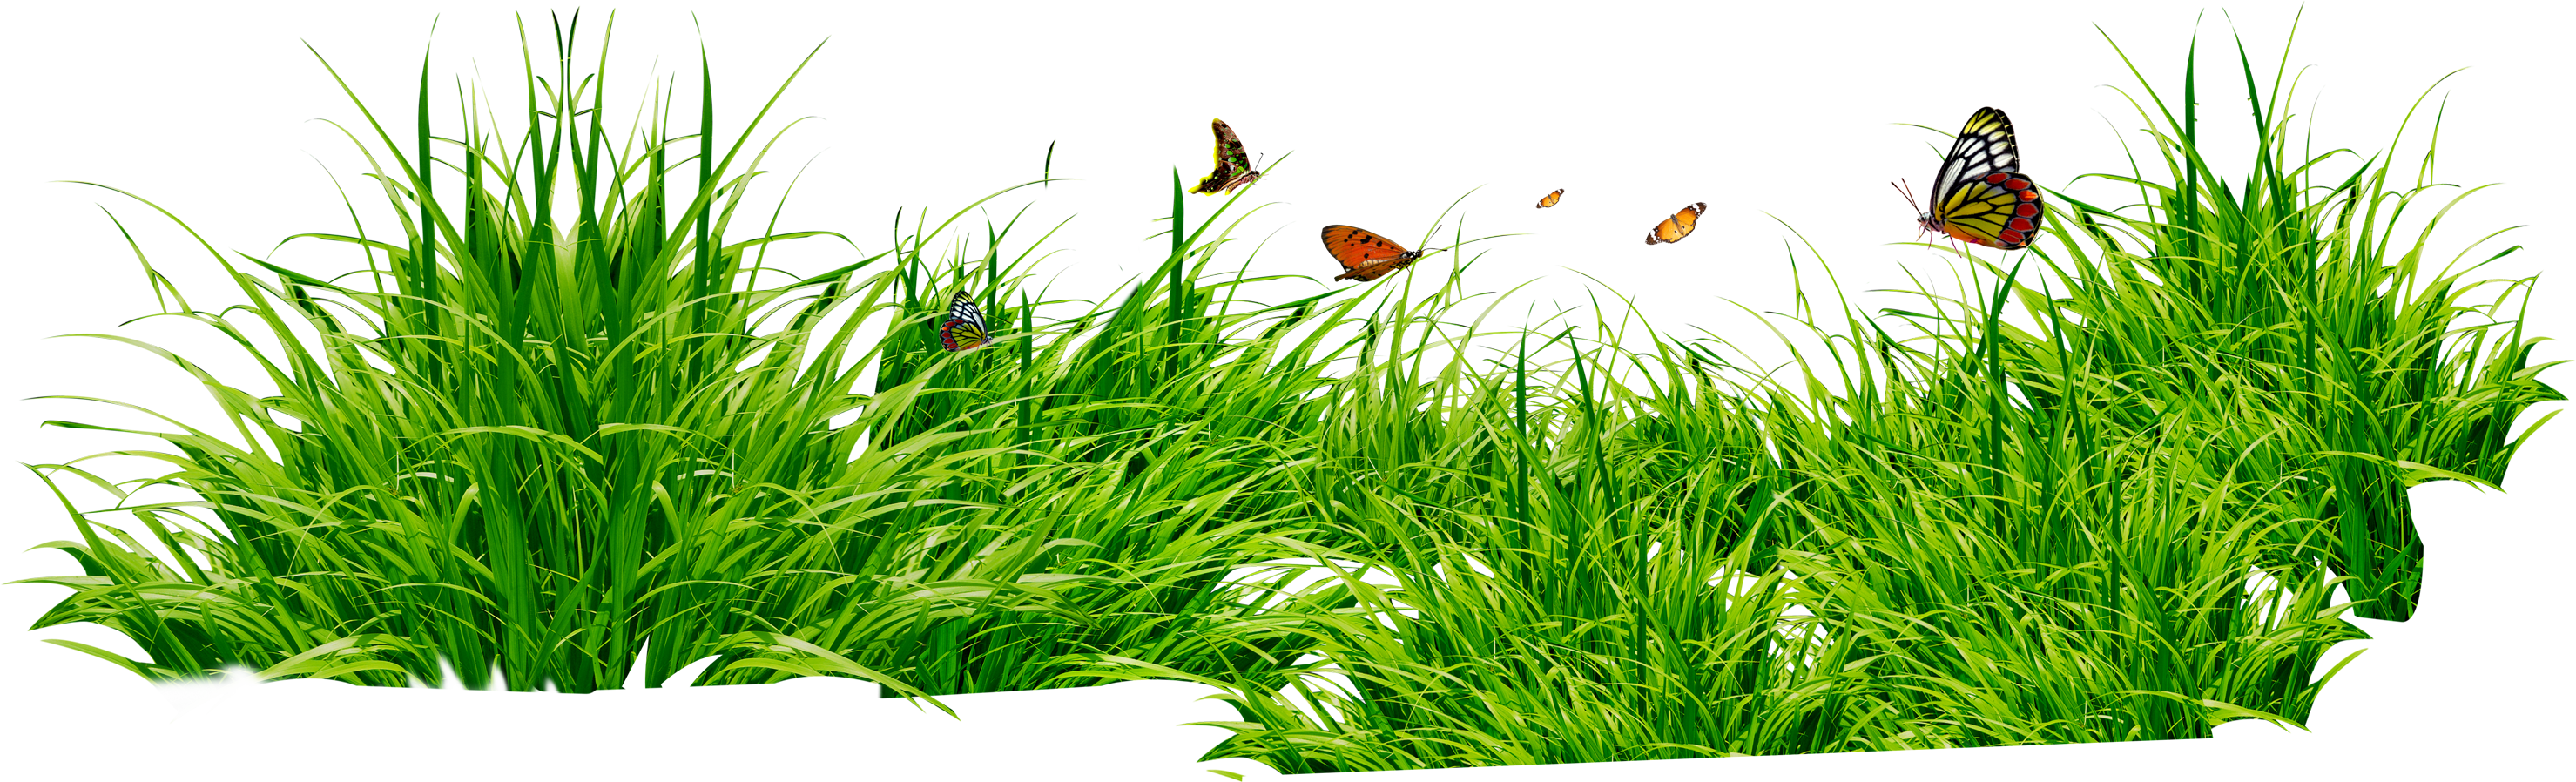 Grass images pictures clip art - Grass HD PNG